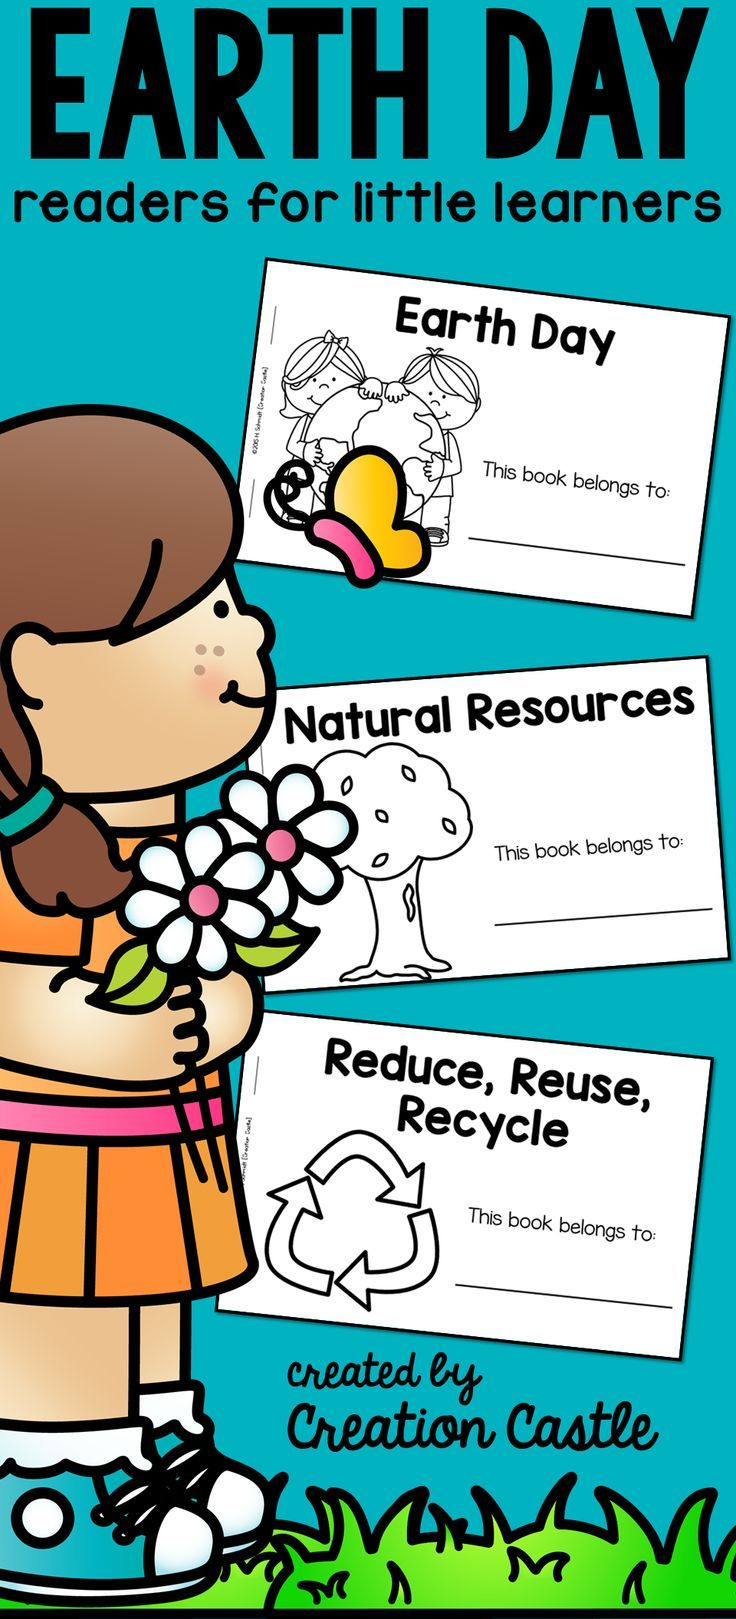 recycle recycling and natural resources Recycling also conserves valuable natural resources and energy, reduces greenhouse gas emissions, and helps us take responsibility for our waste today, as opposed to leaving a burden for future generations.